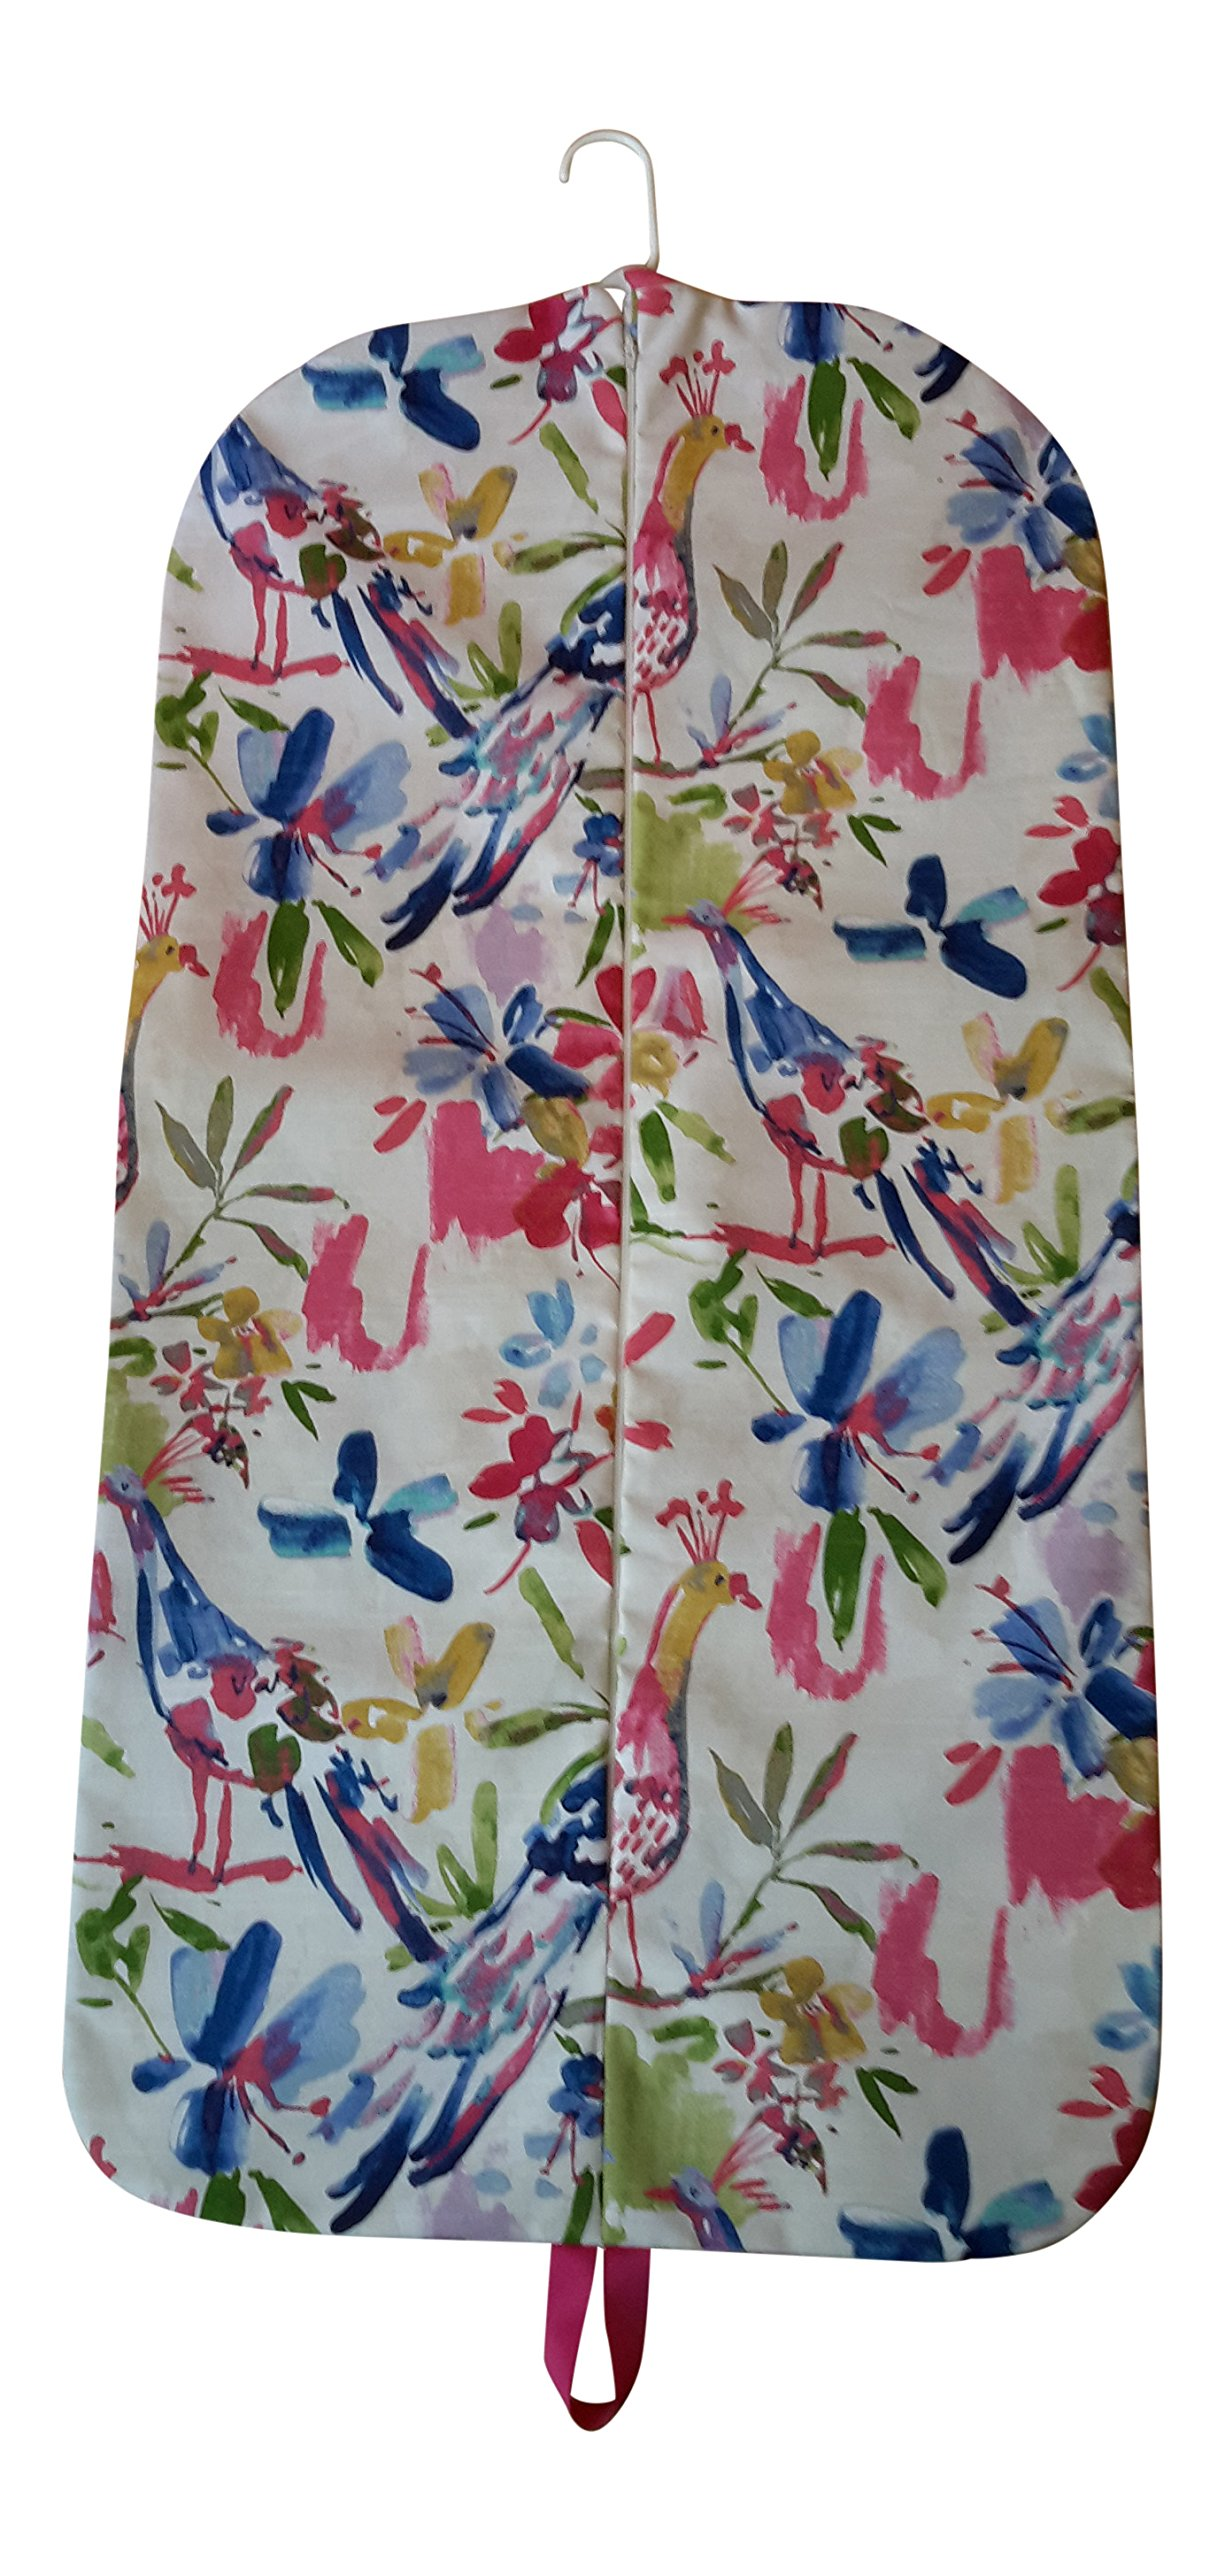 Carry It Well Women's Colorful Birds Hanging Garment Bag